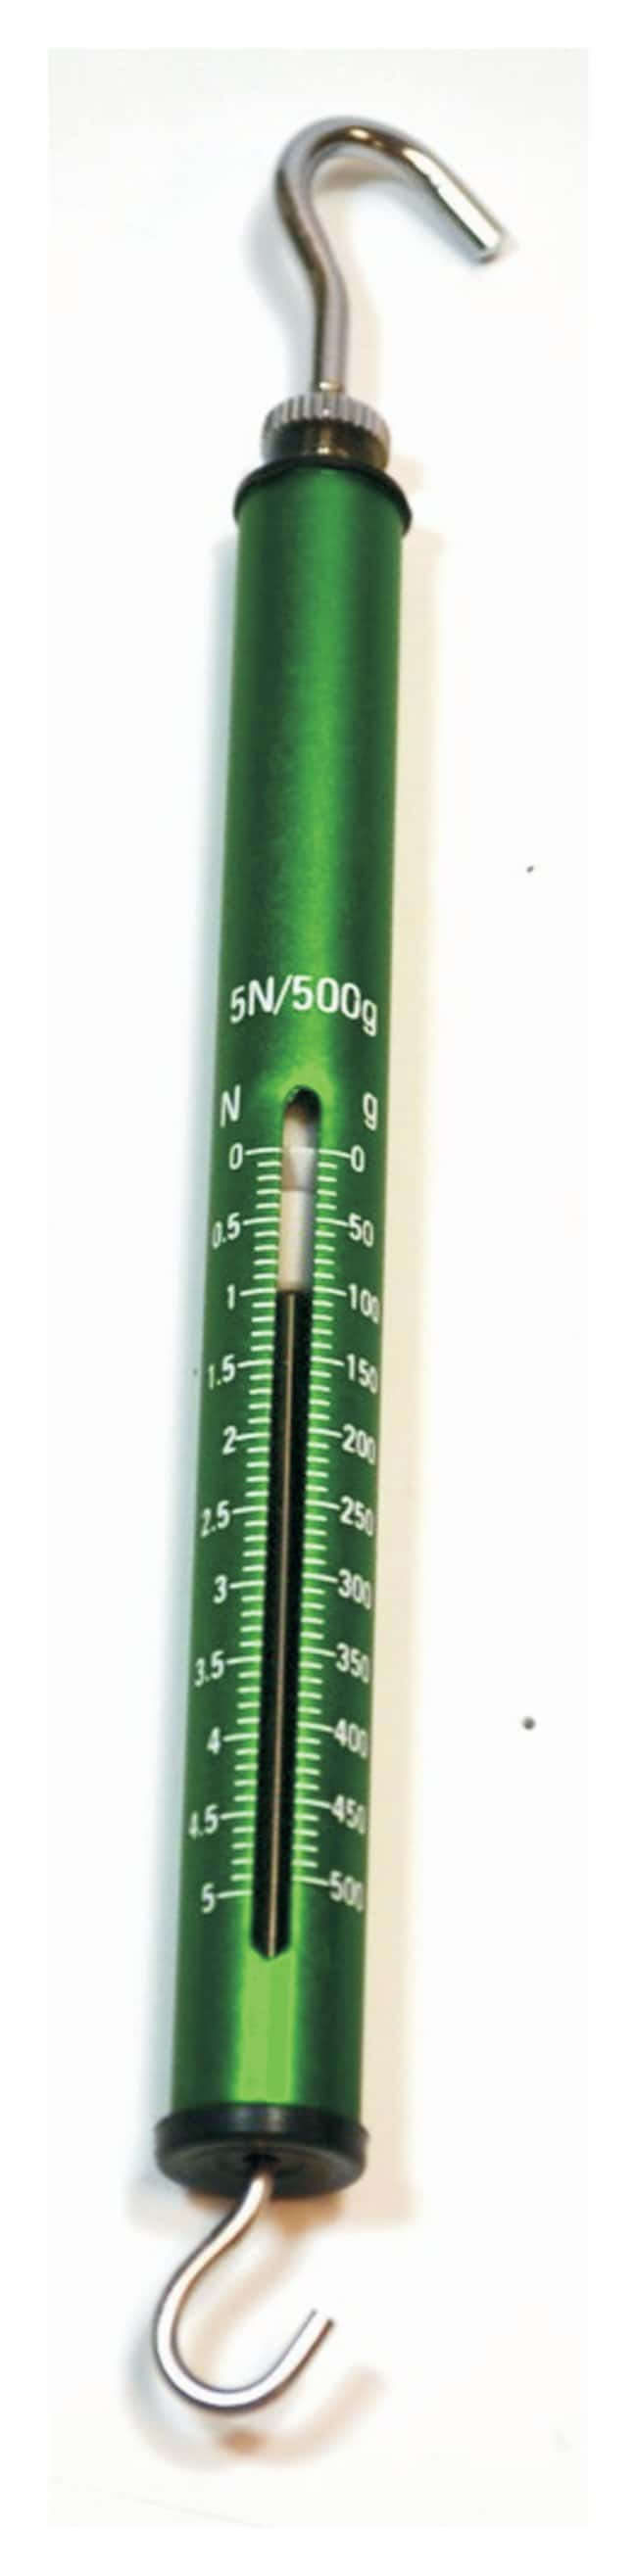 Eisco High Resolution Dynamometers - Spring Balance:Teaching Supplies:Classroom